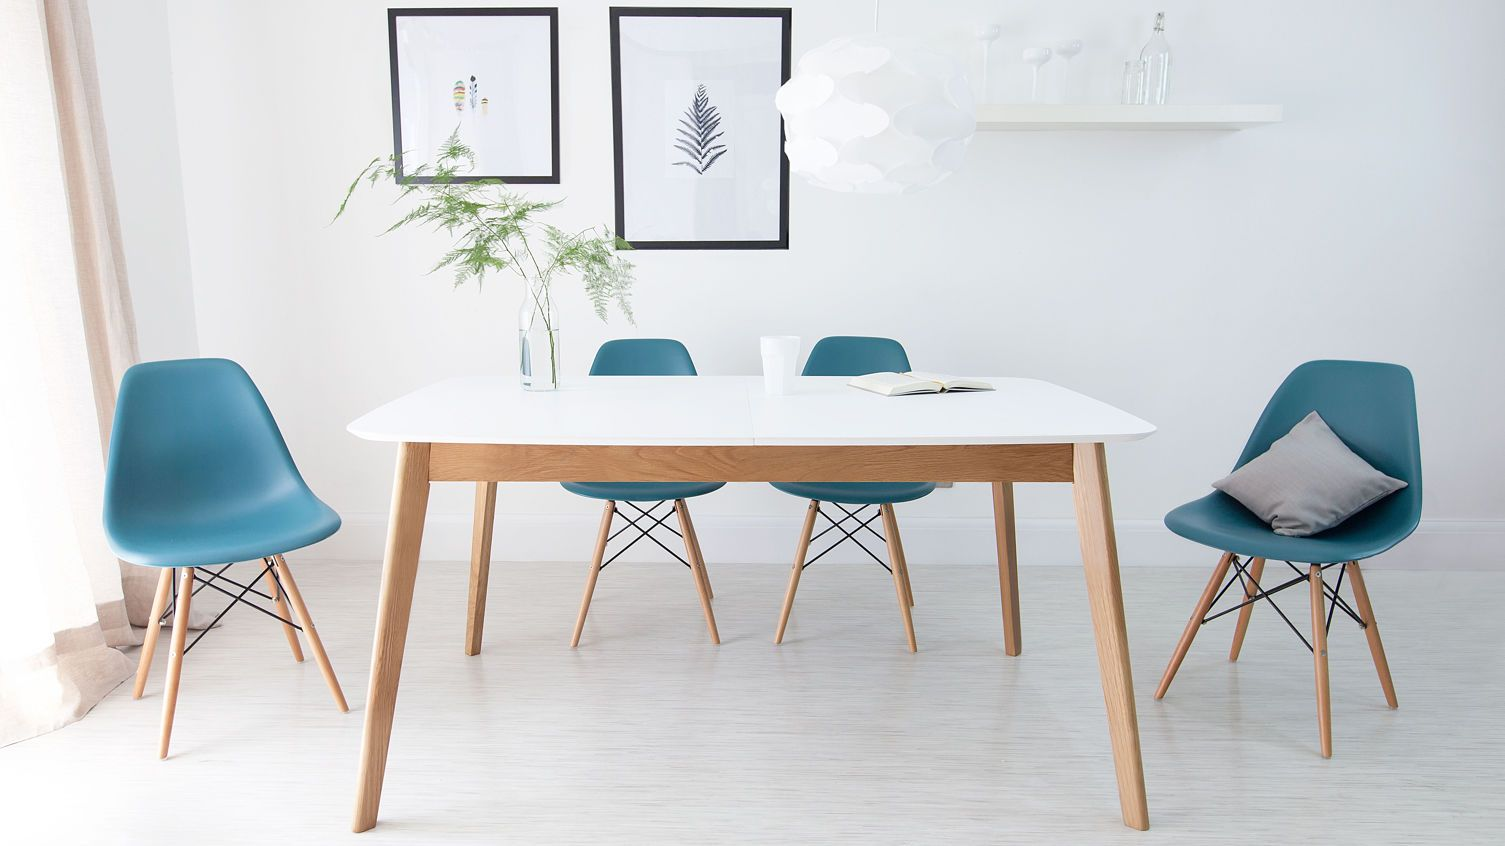 Eames Dining Chair And Oak Dining Table #1